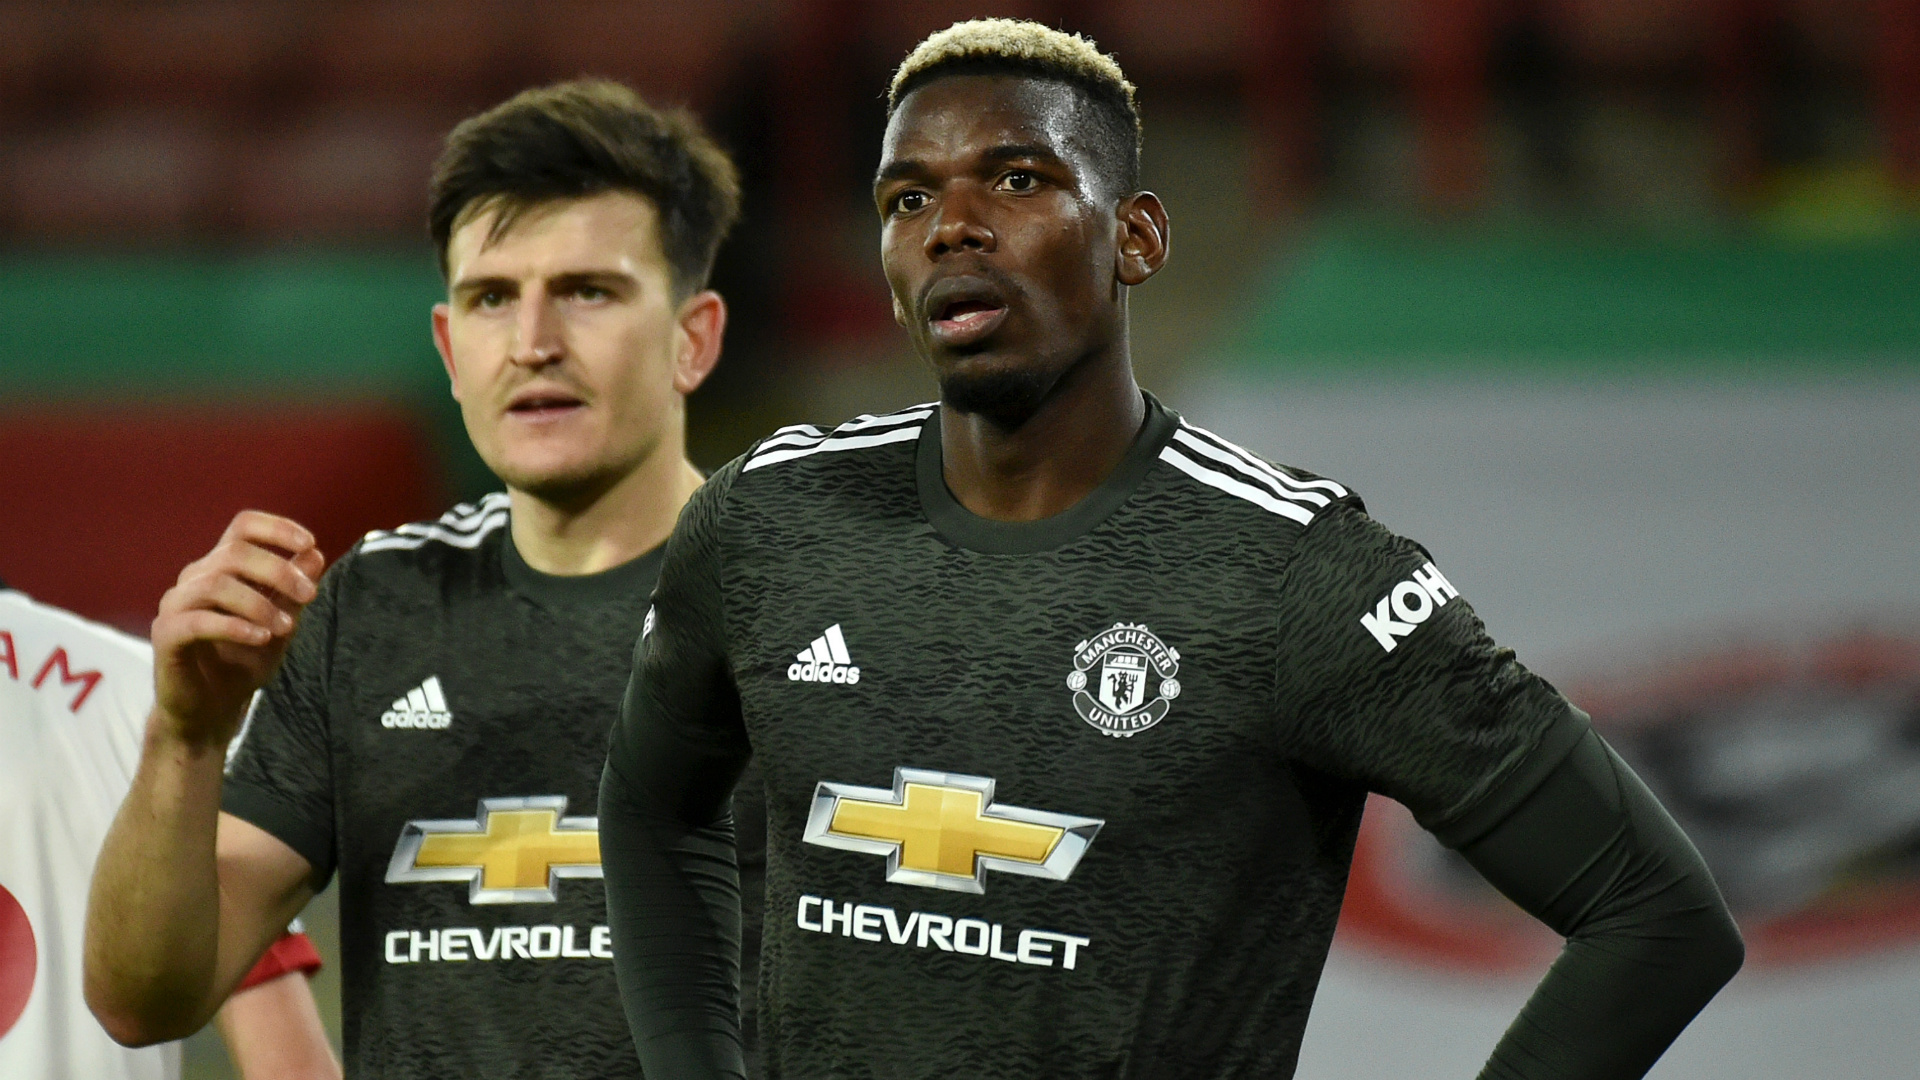 'Ambitious Pogba is enjoying his football at Man Utd' - Solskjaer delighted with midfielder despite exit talk